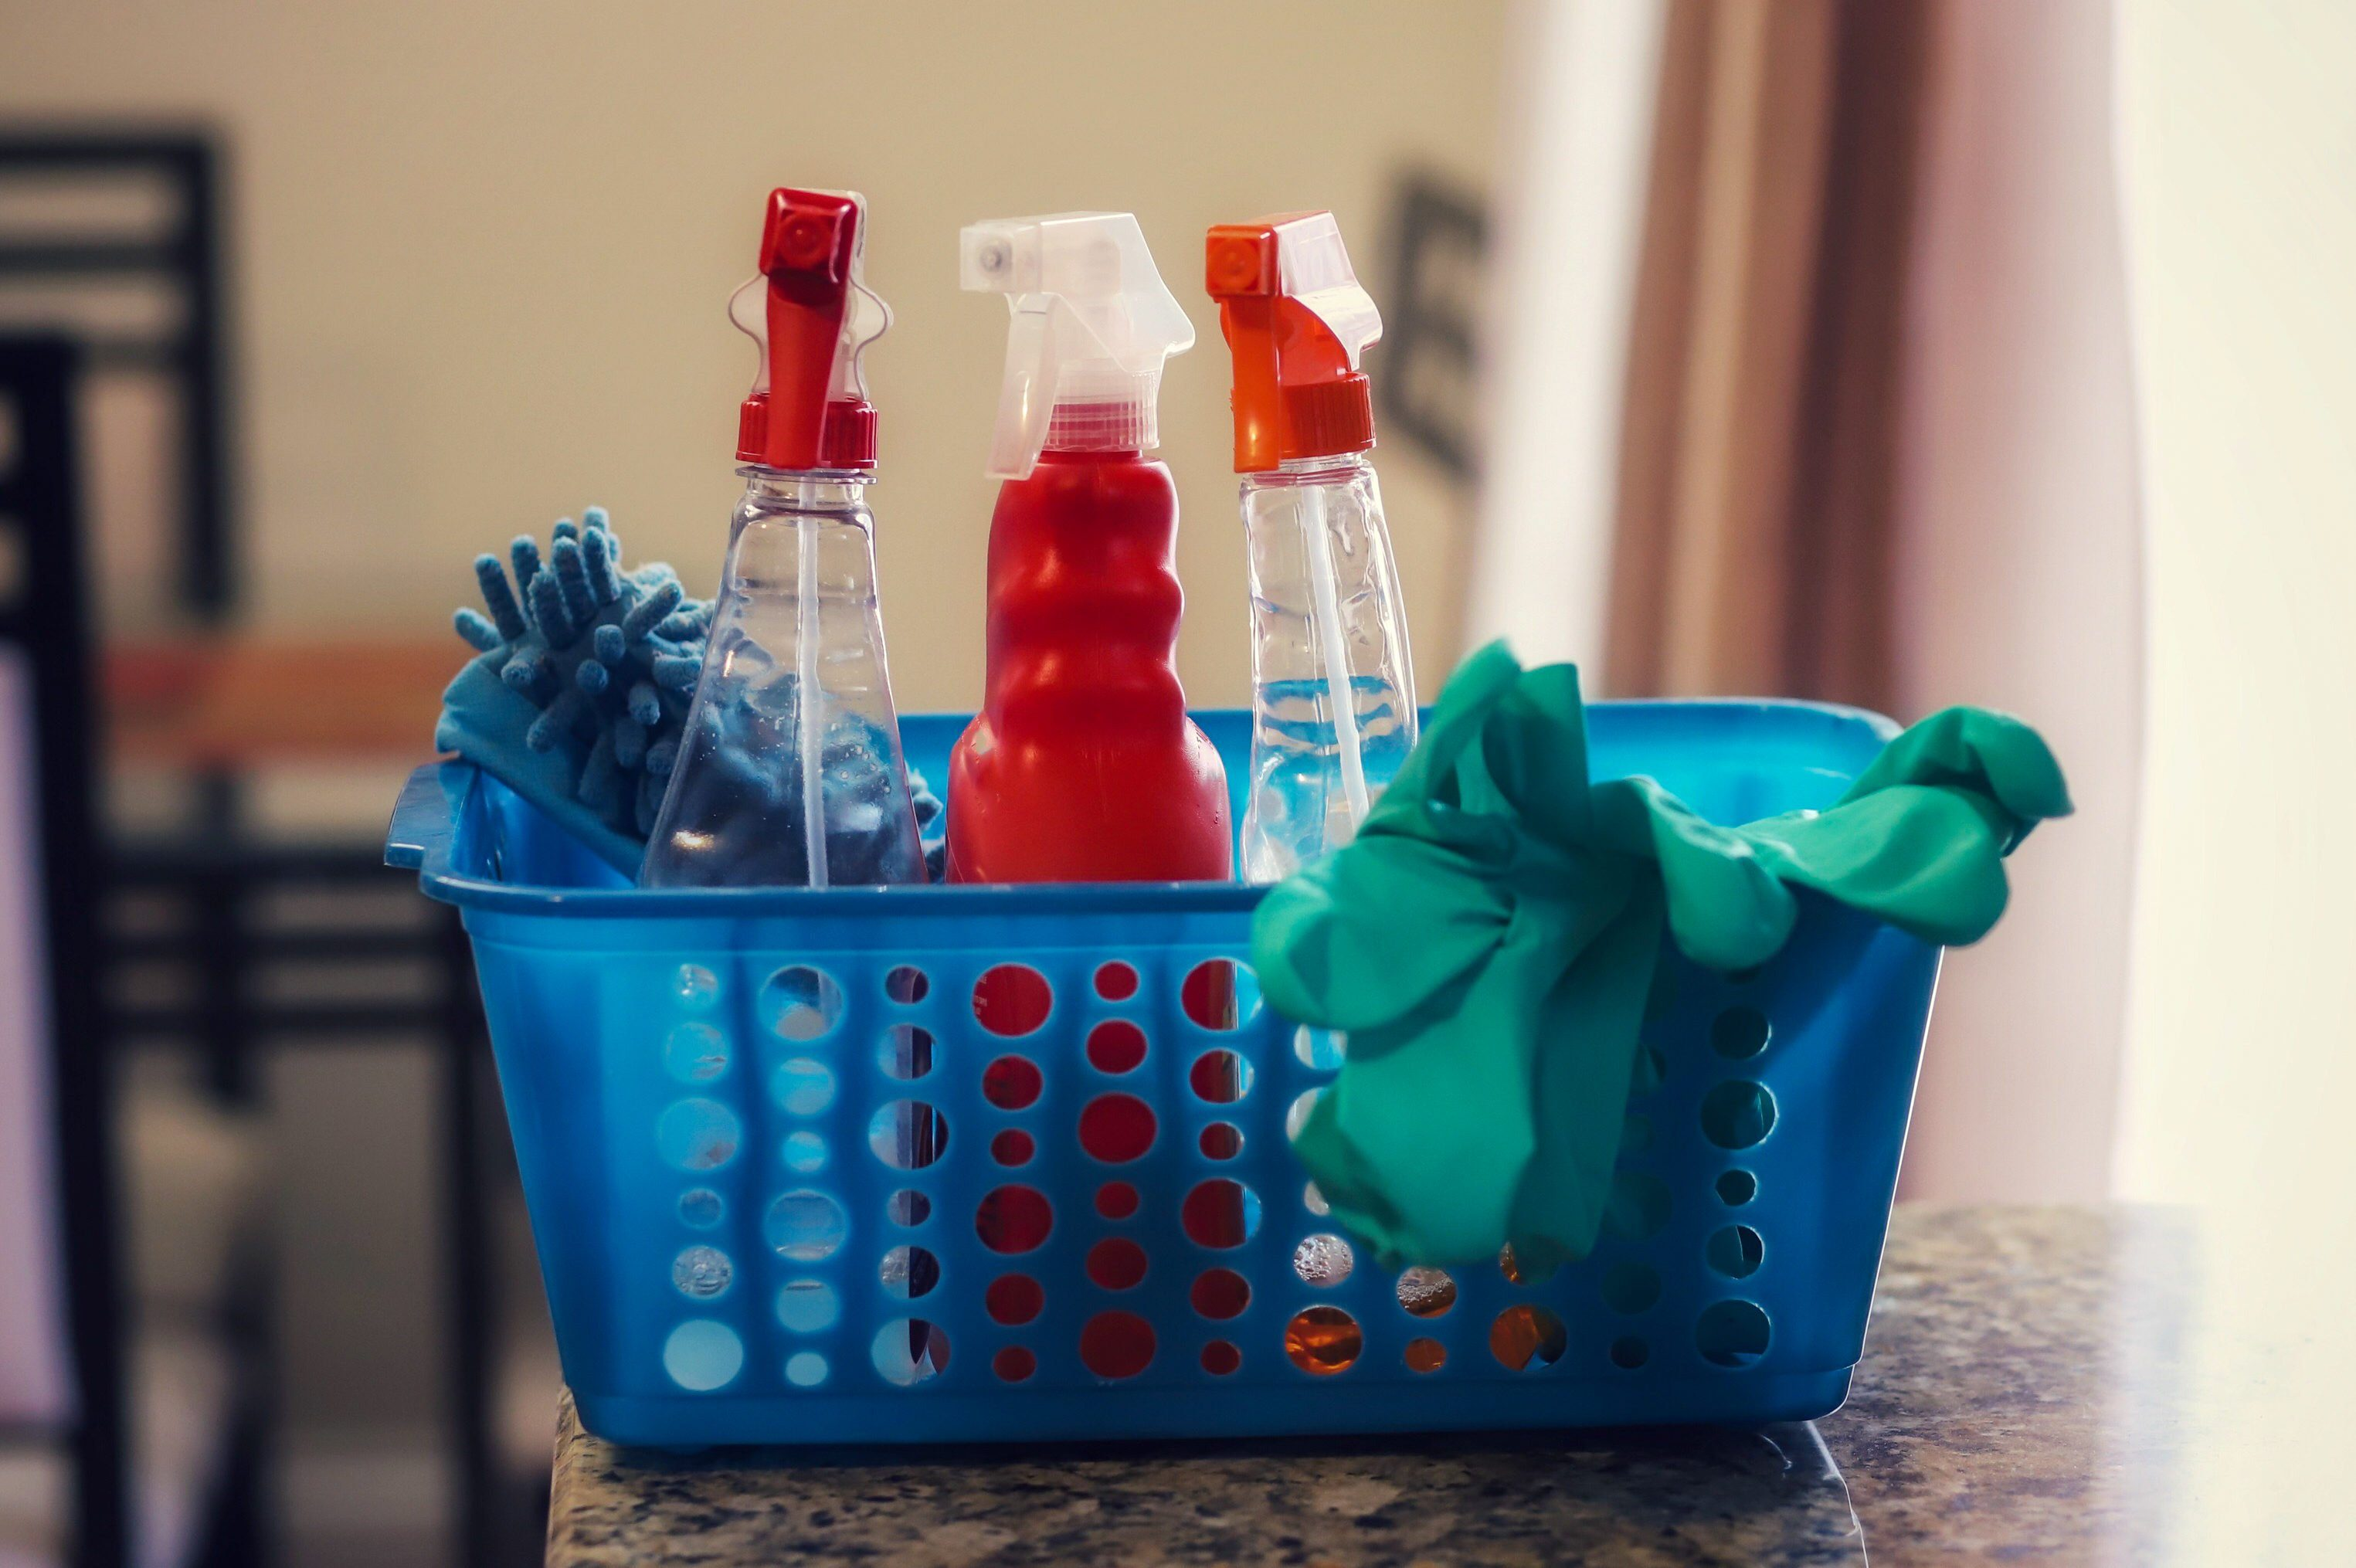 Cleaning supplies sitting on a kitchen counter